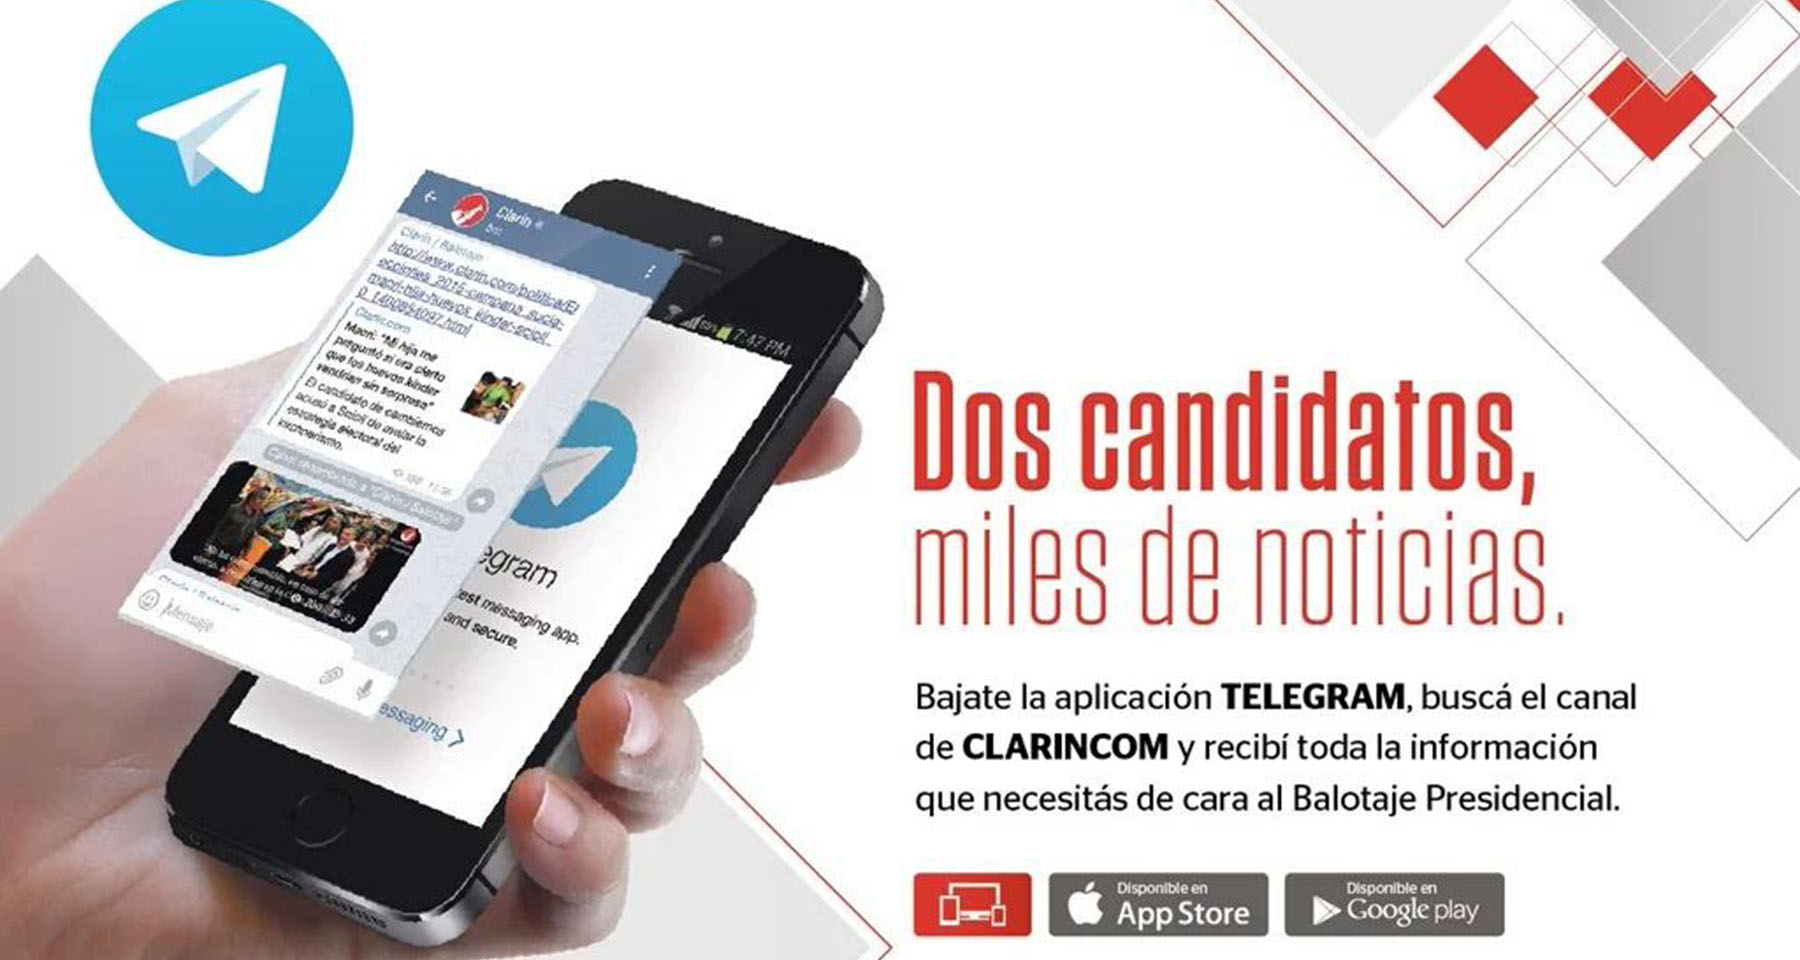 Clarín follows mobile audience, uses messaging platform during election